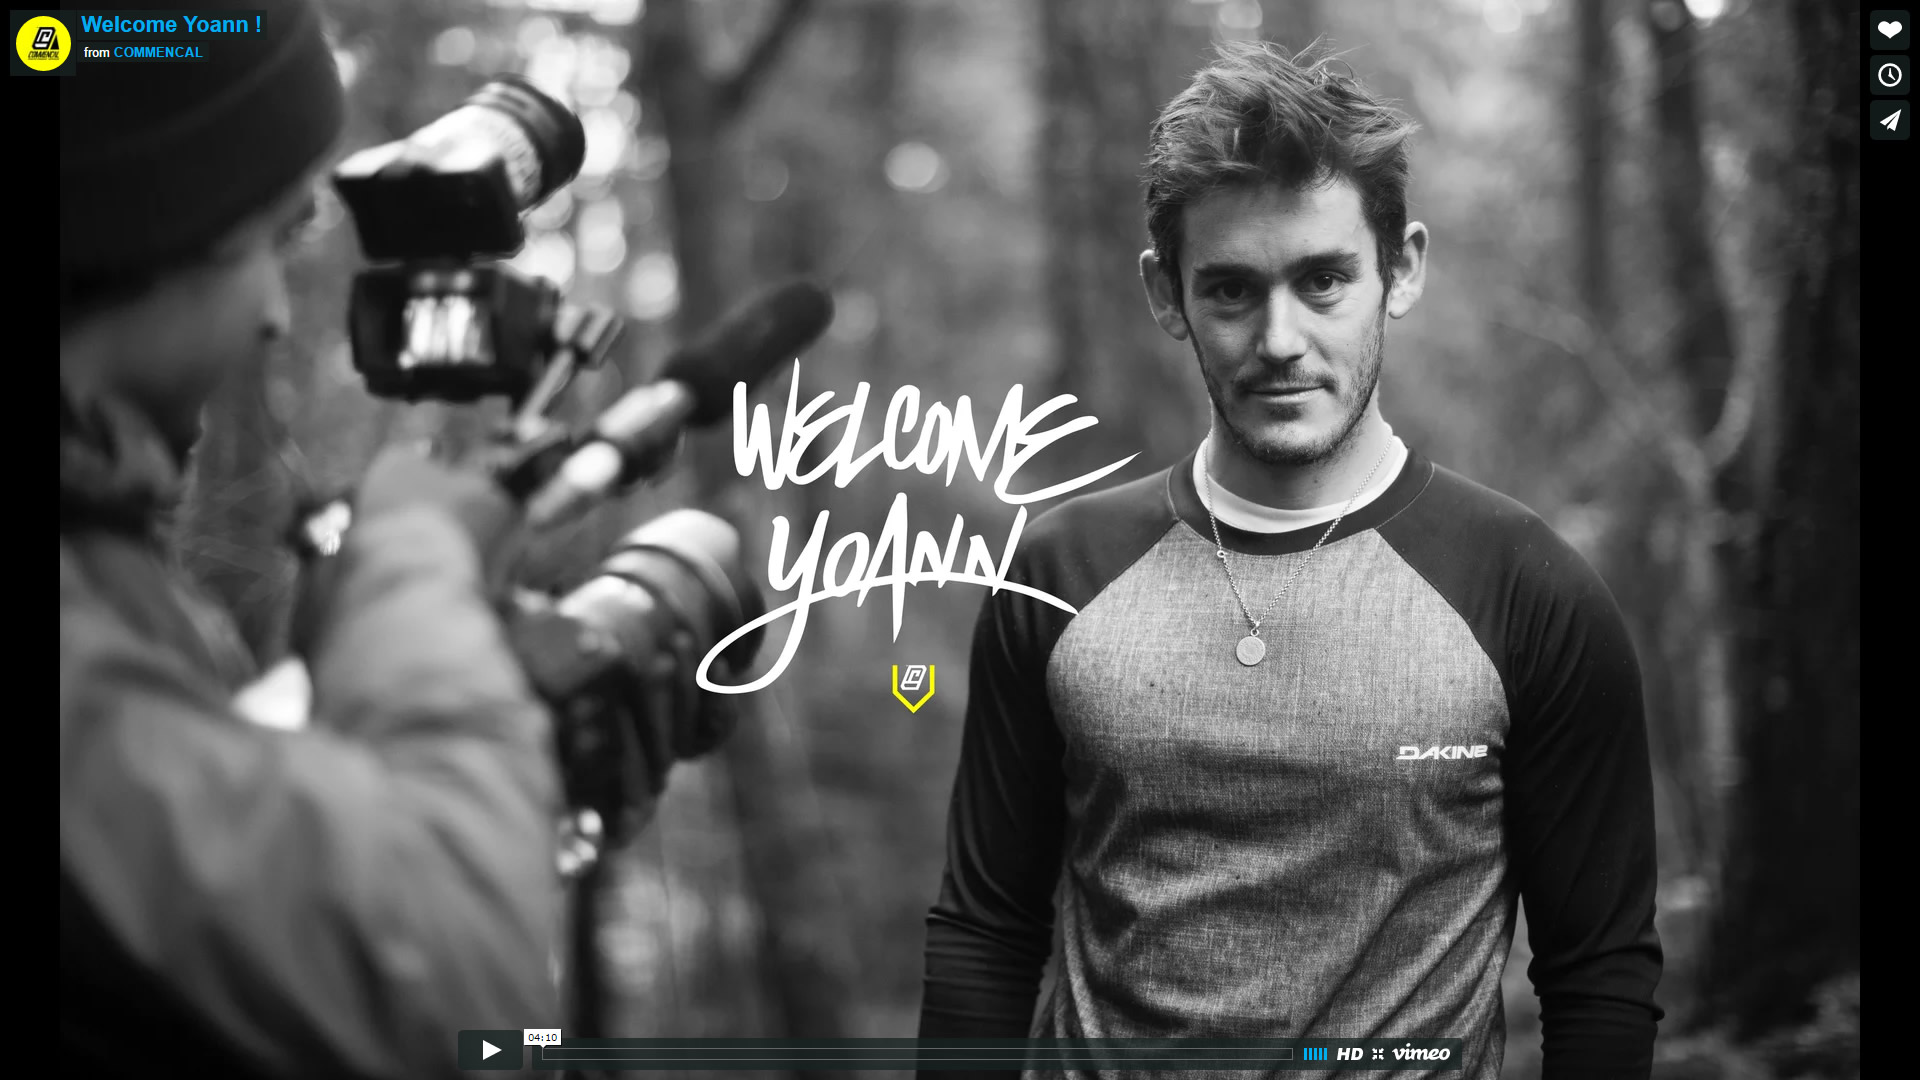 welcomeyoann